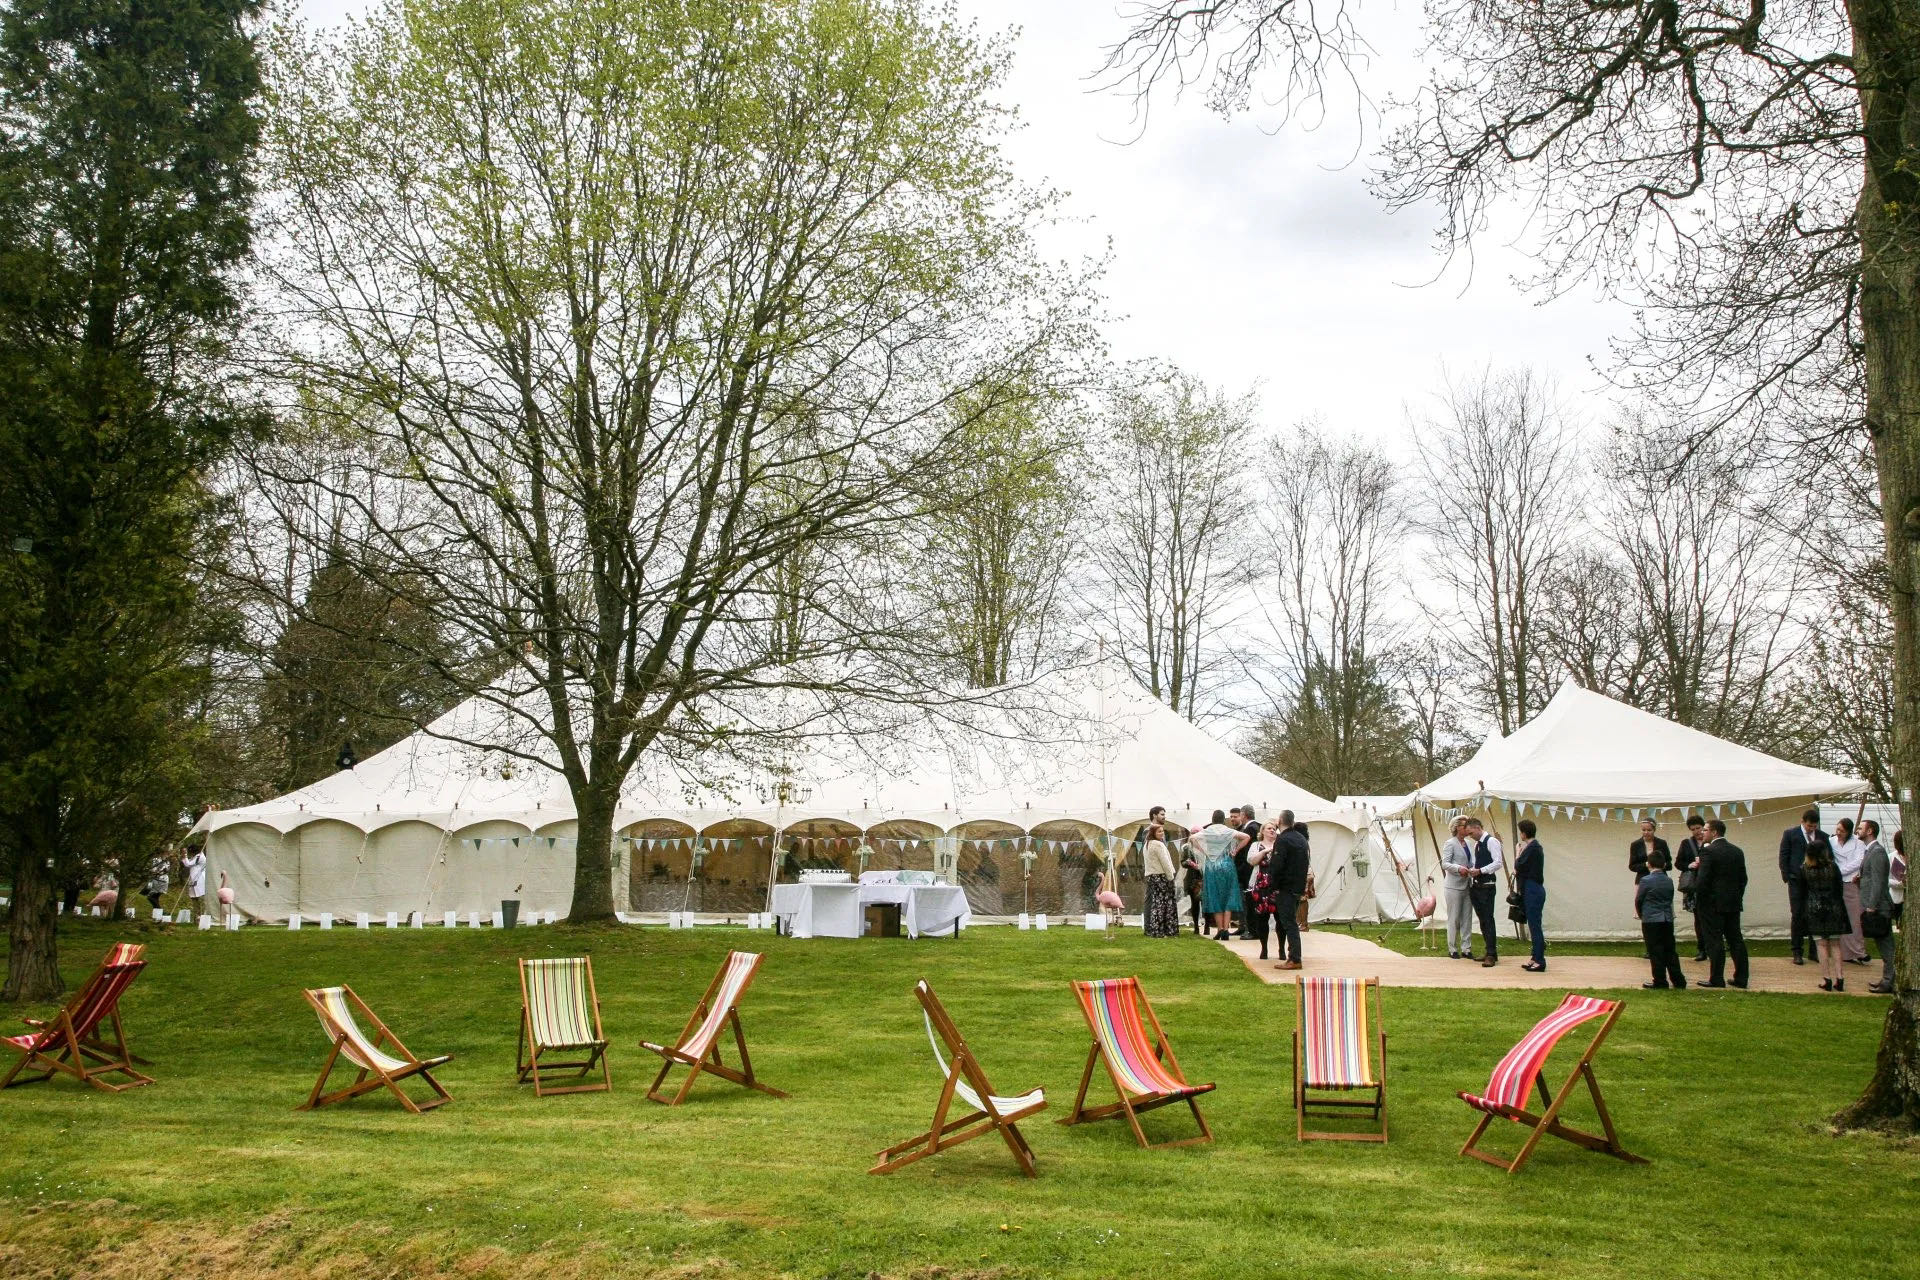 Petal pole tent wedding marquee hire Cotswolds